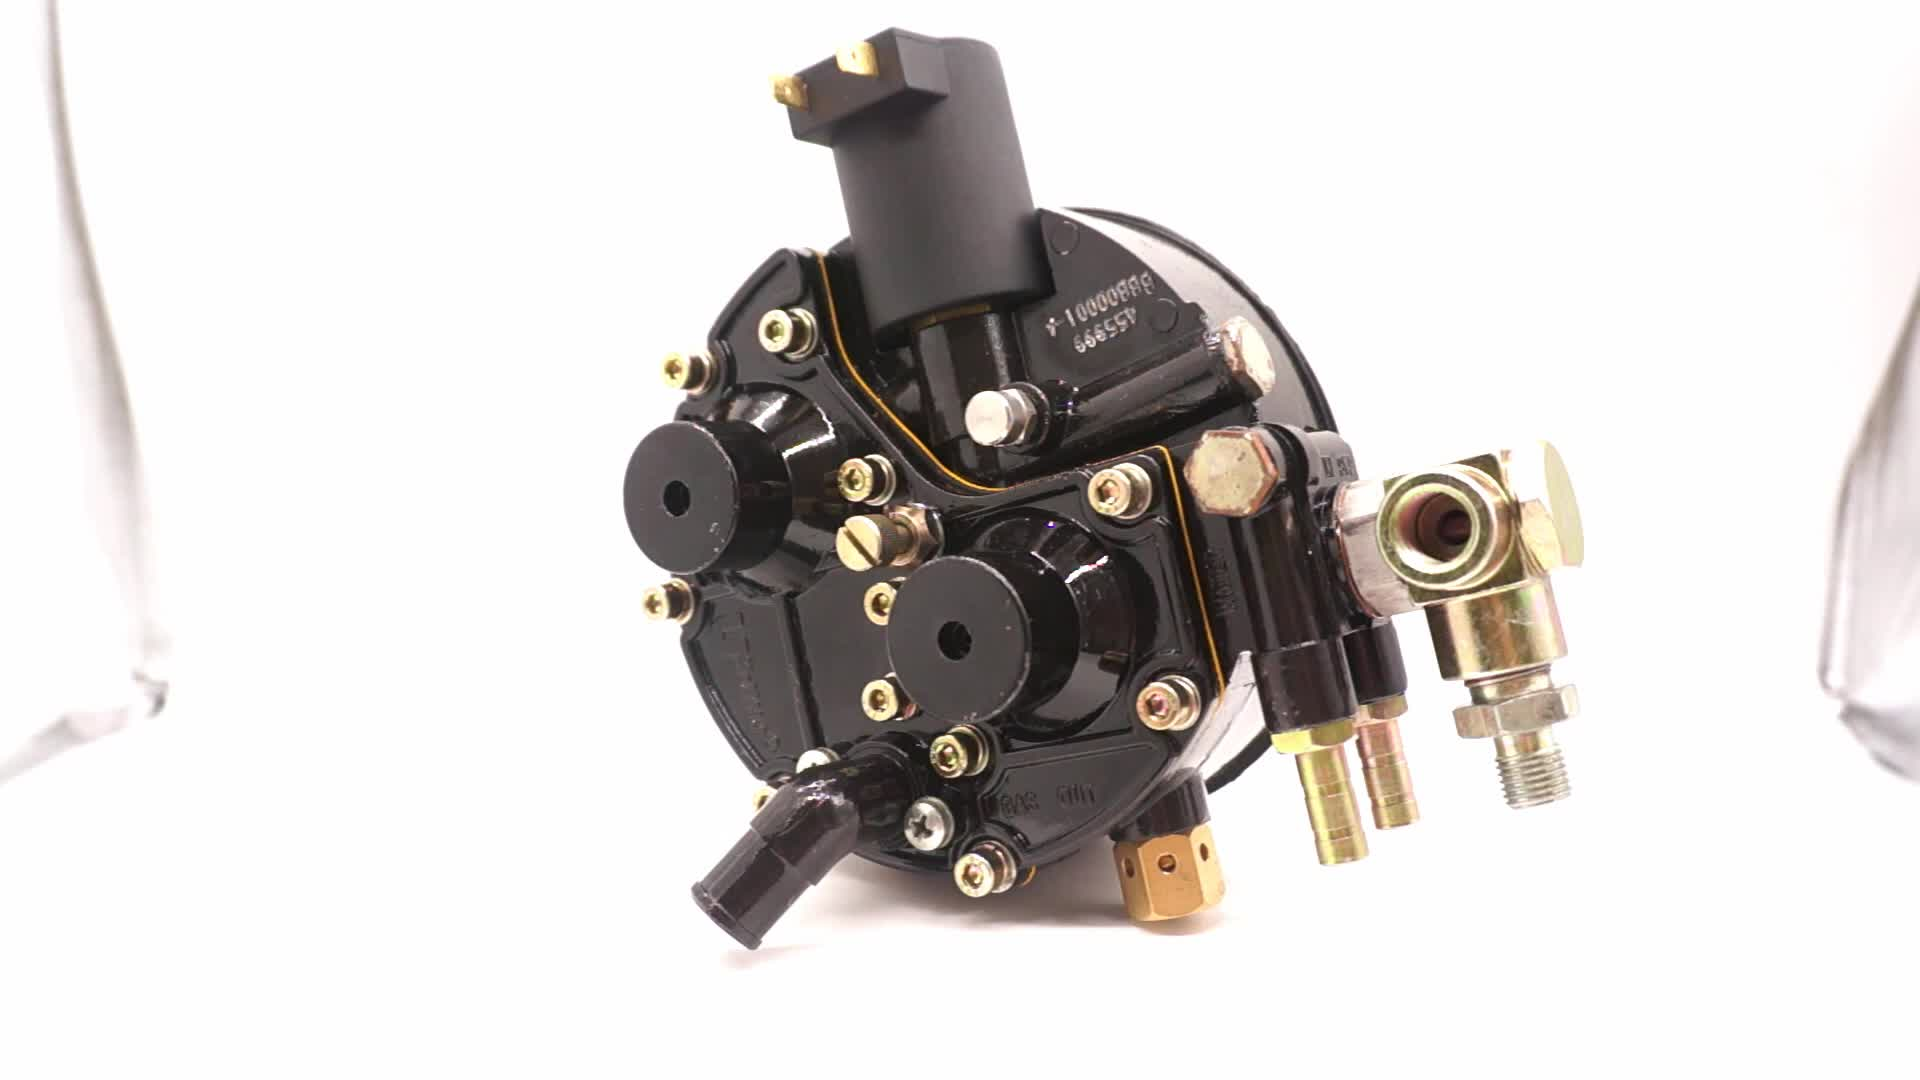 CNG single point injection reducer cng regulator conversion kits for car cng kit for diesel engine